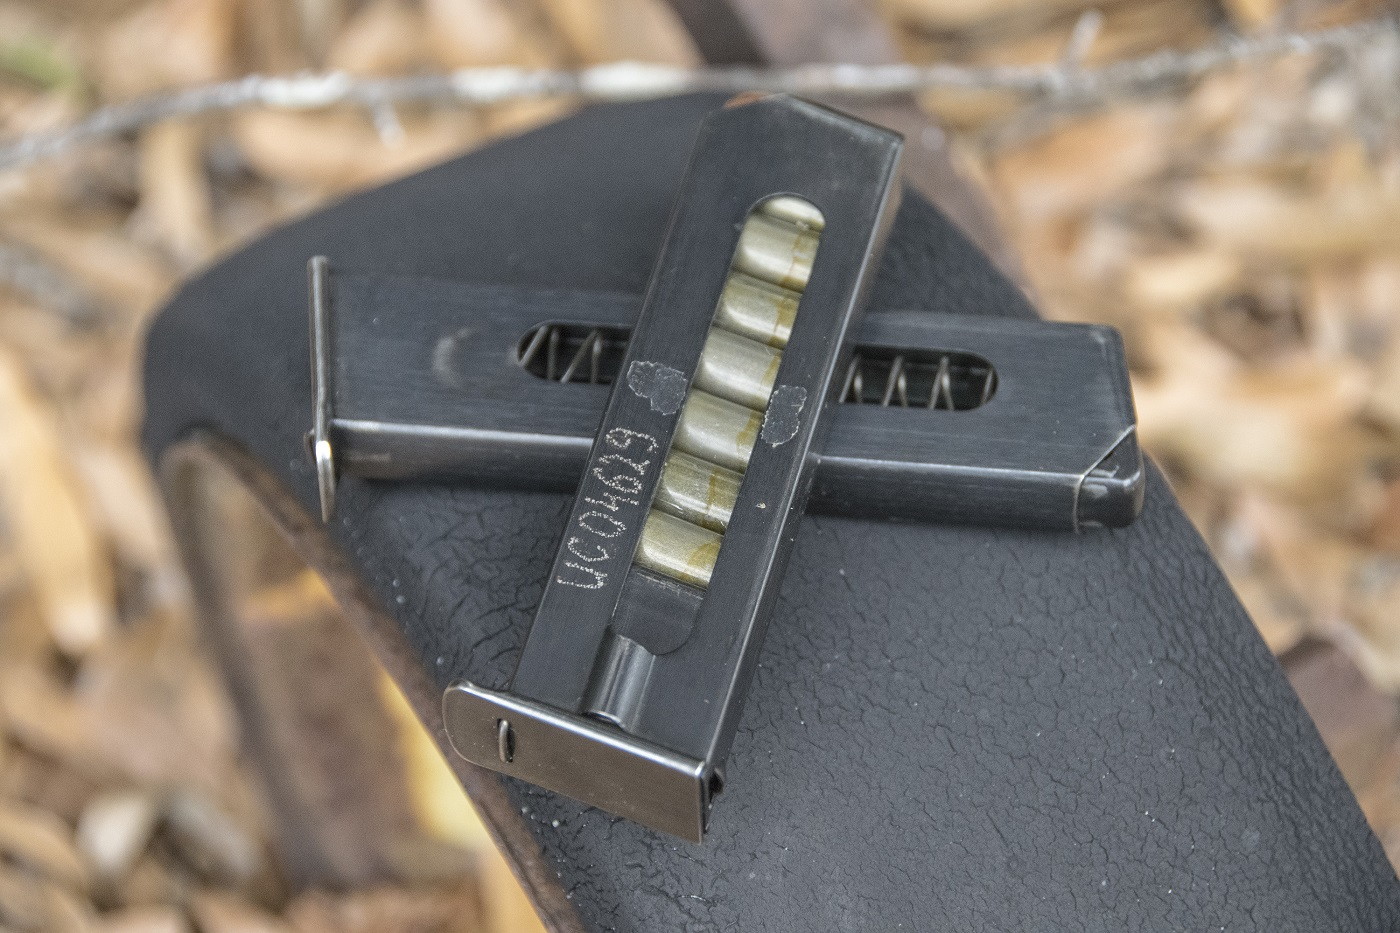 The wanad s narrow magazines hold eight rounds and feature windowed